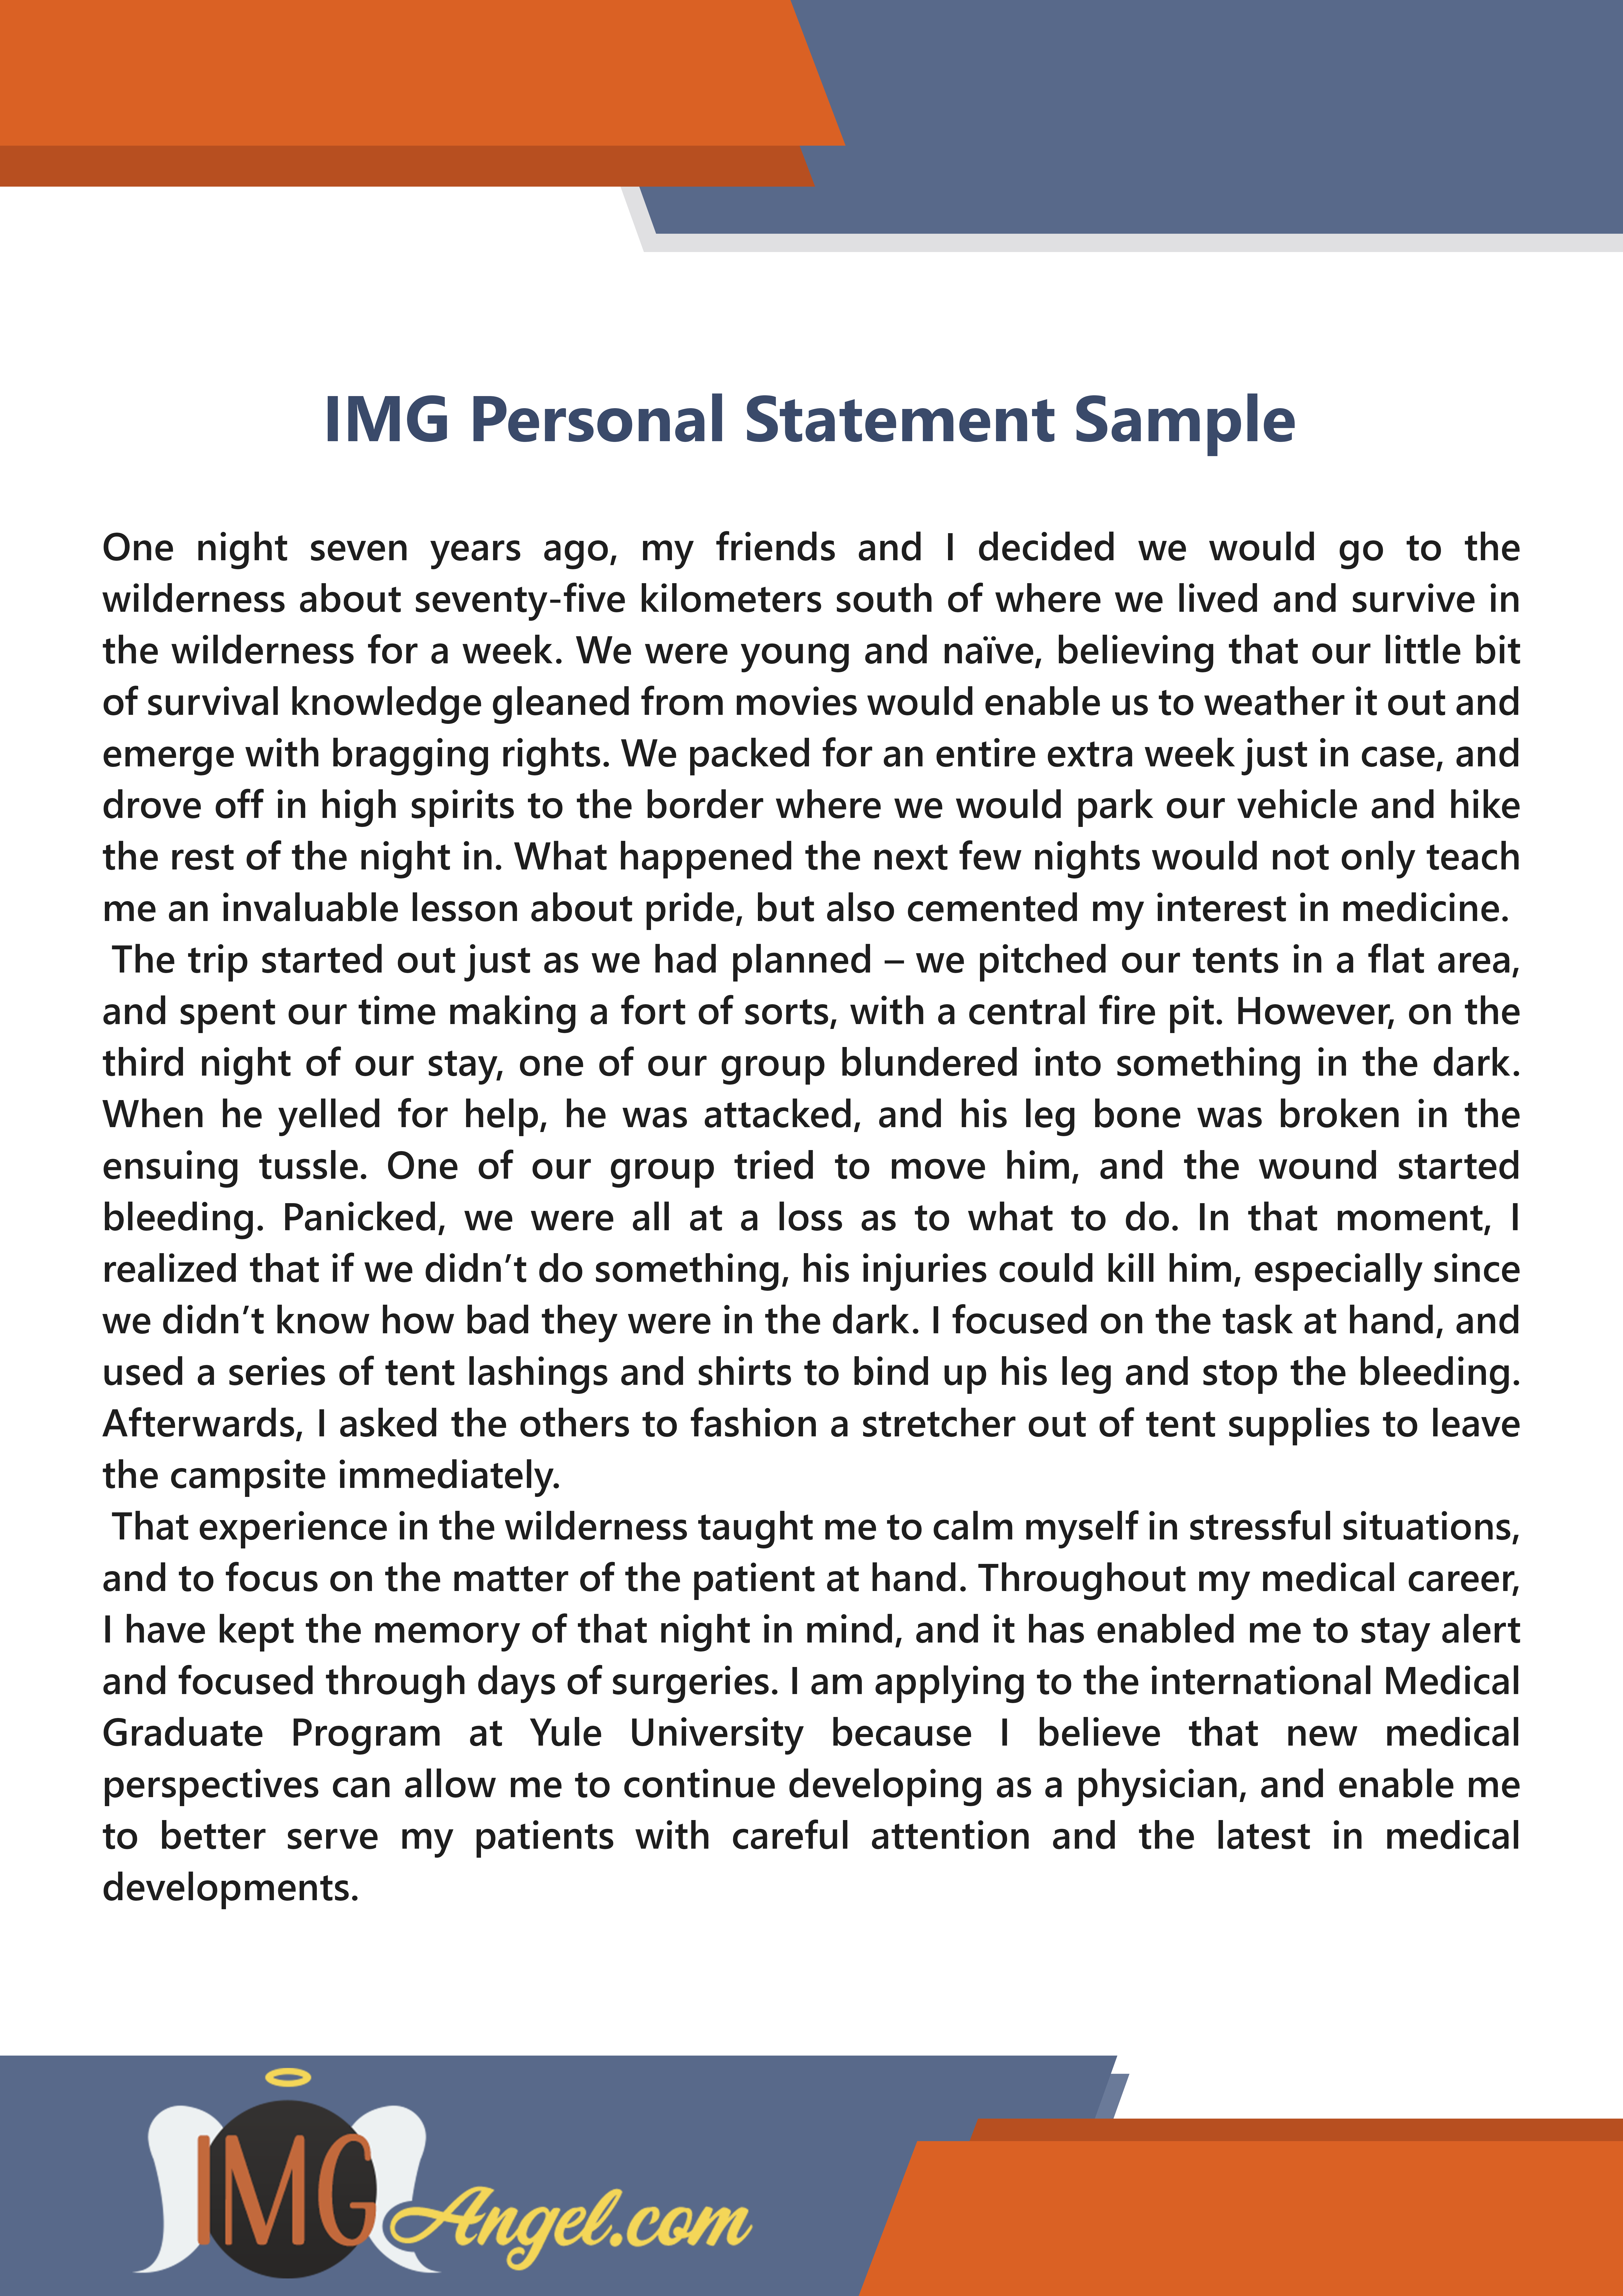 Don T Know How To Write Your Personal Statement Thi Img Sample Might Be Able Help Check Mor Writing Service Person A For Medical Residency